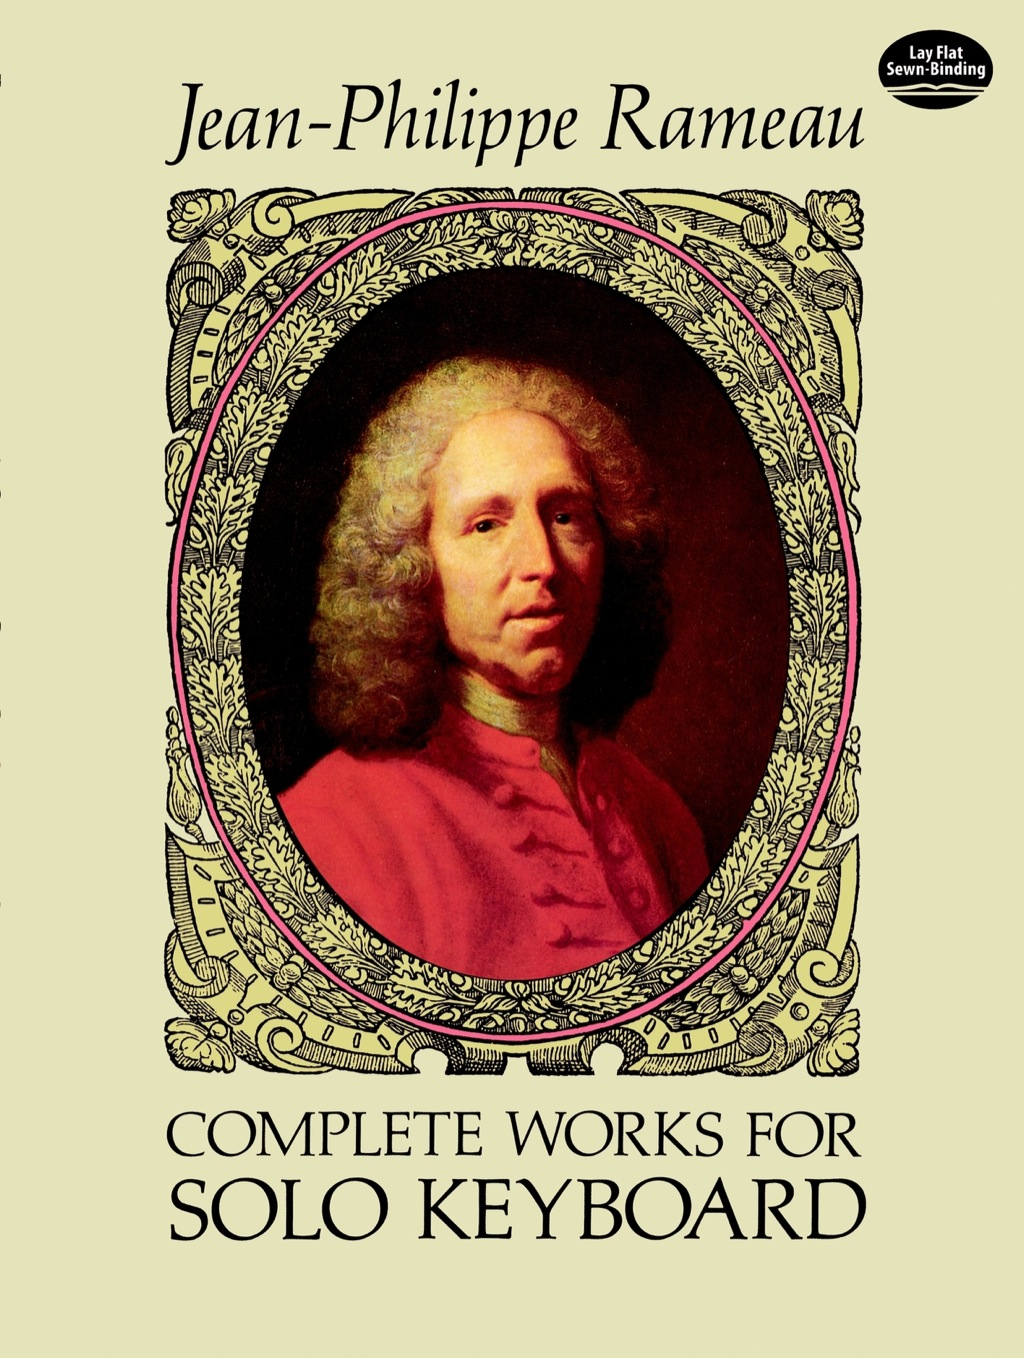 Complete Works for Solo Keyboard (ebook) eBooks